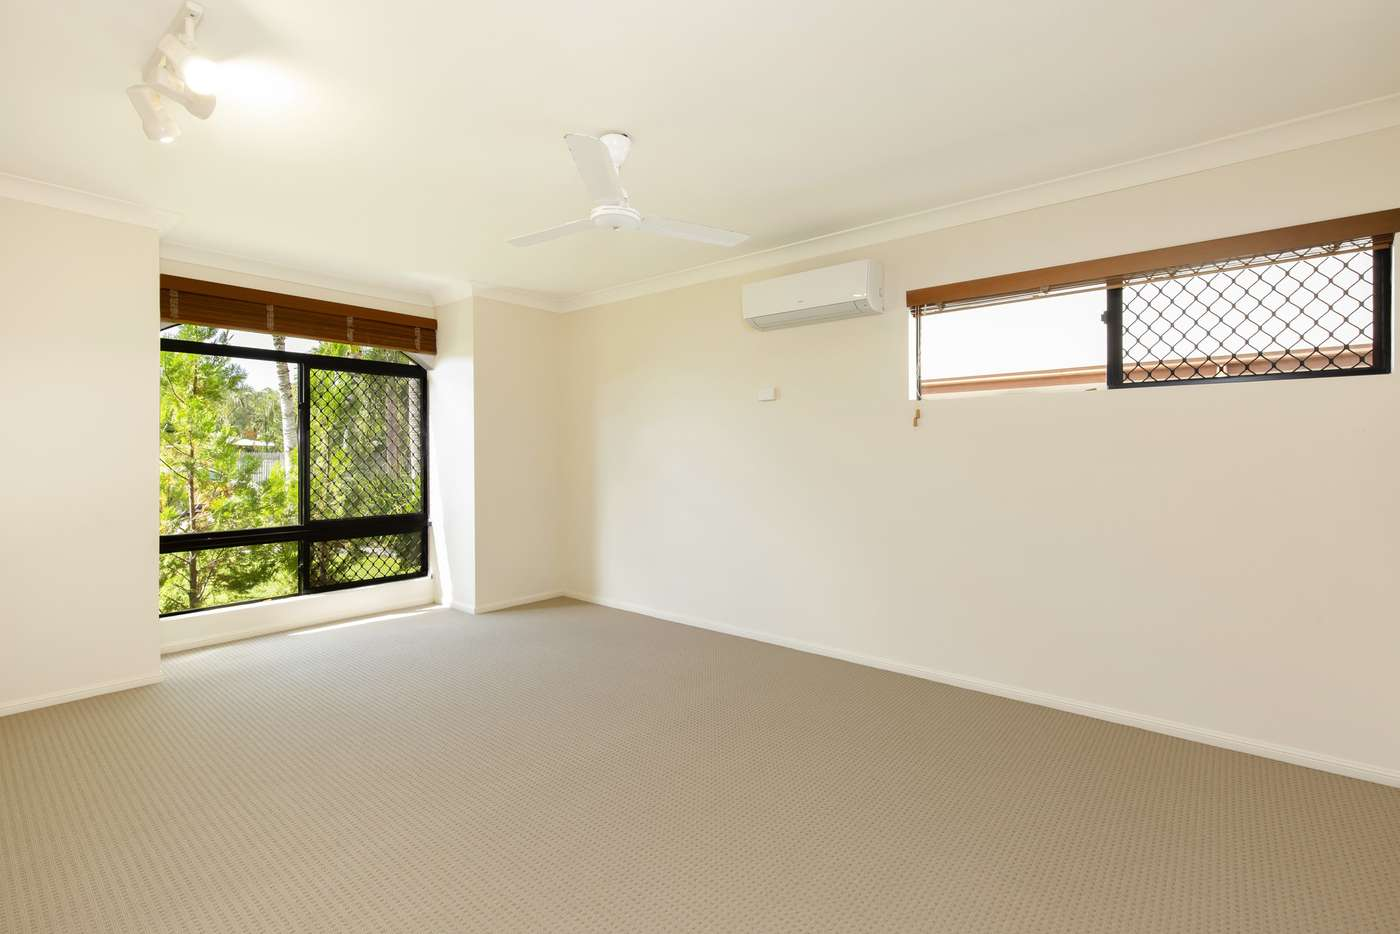 Sixth view of Homely house listing, 21 Woodbine Drive, Annandale QLD 4814